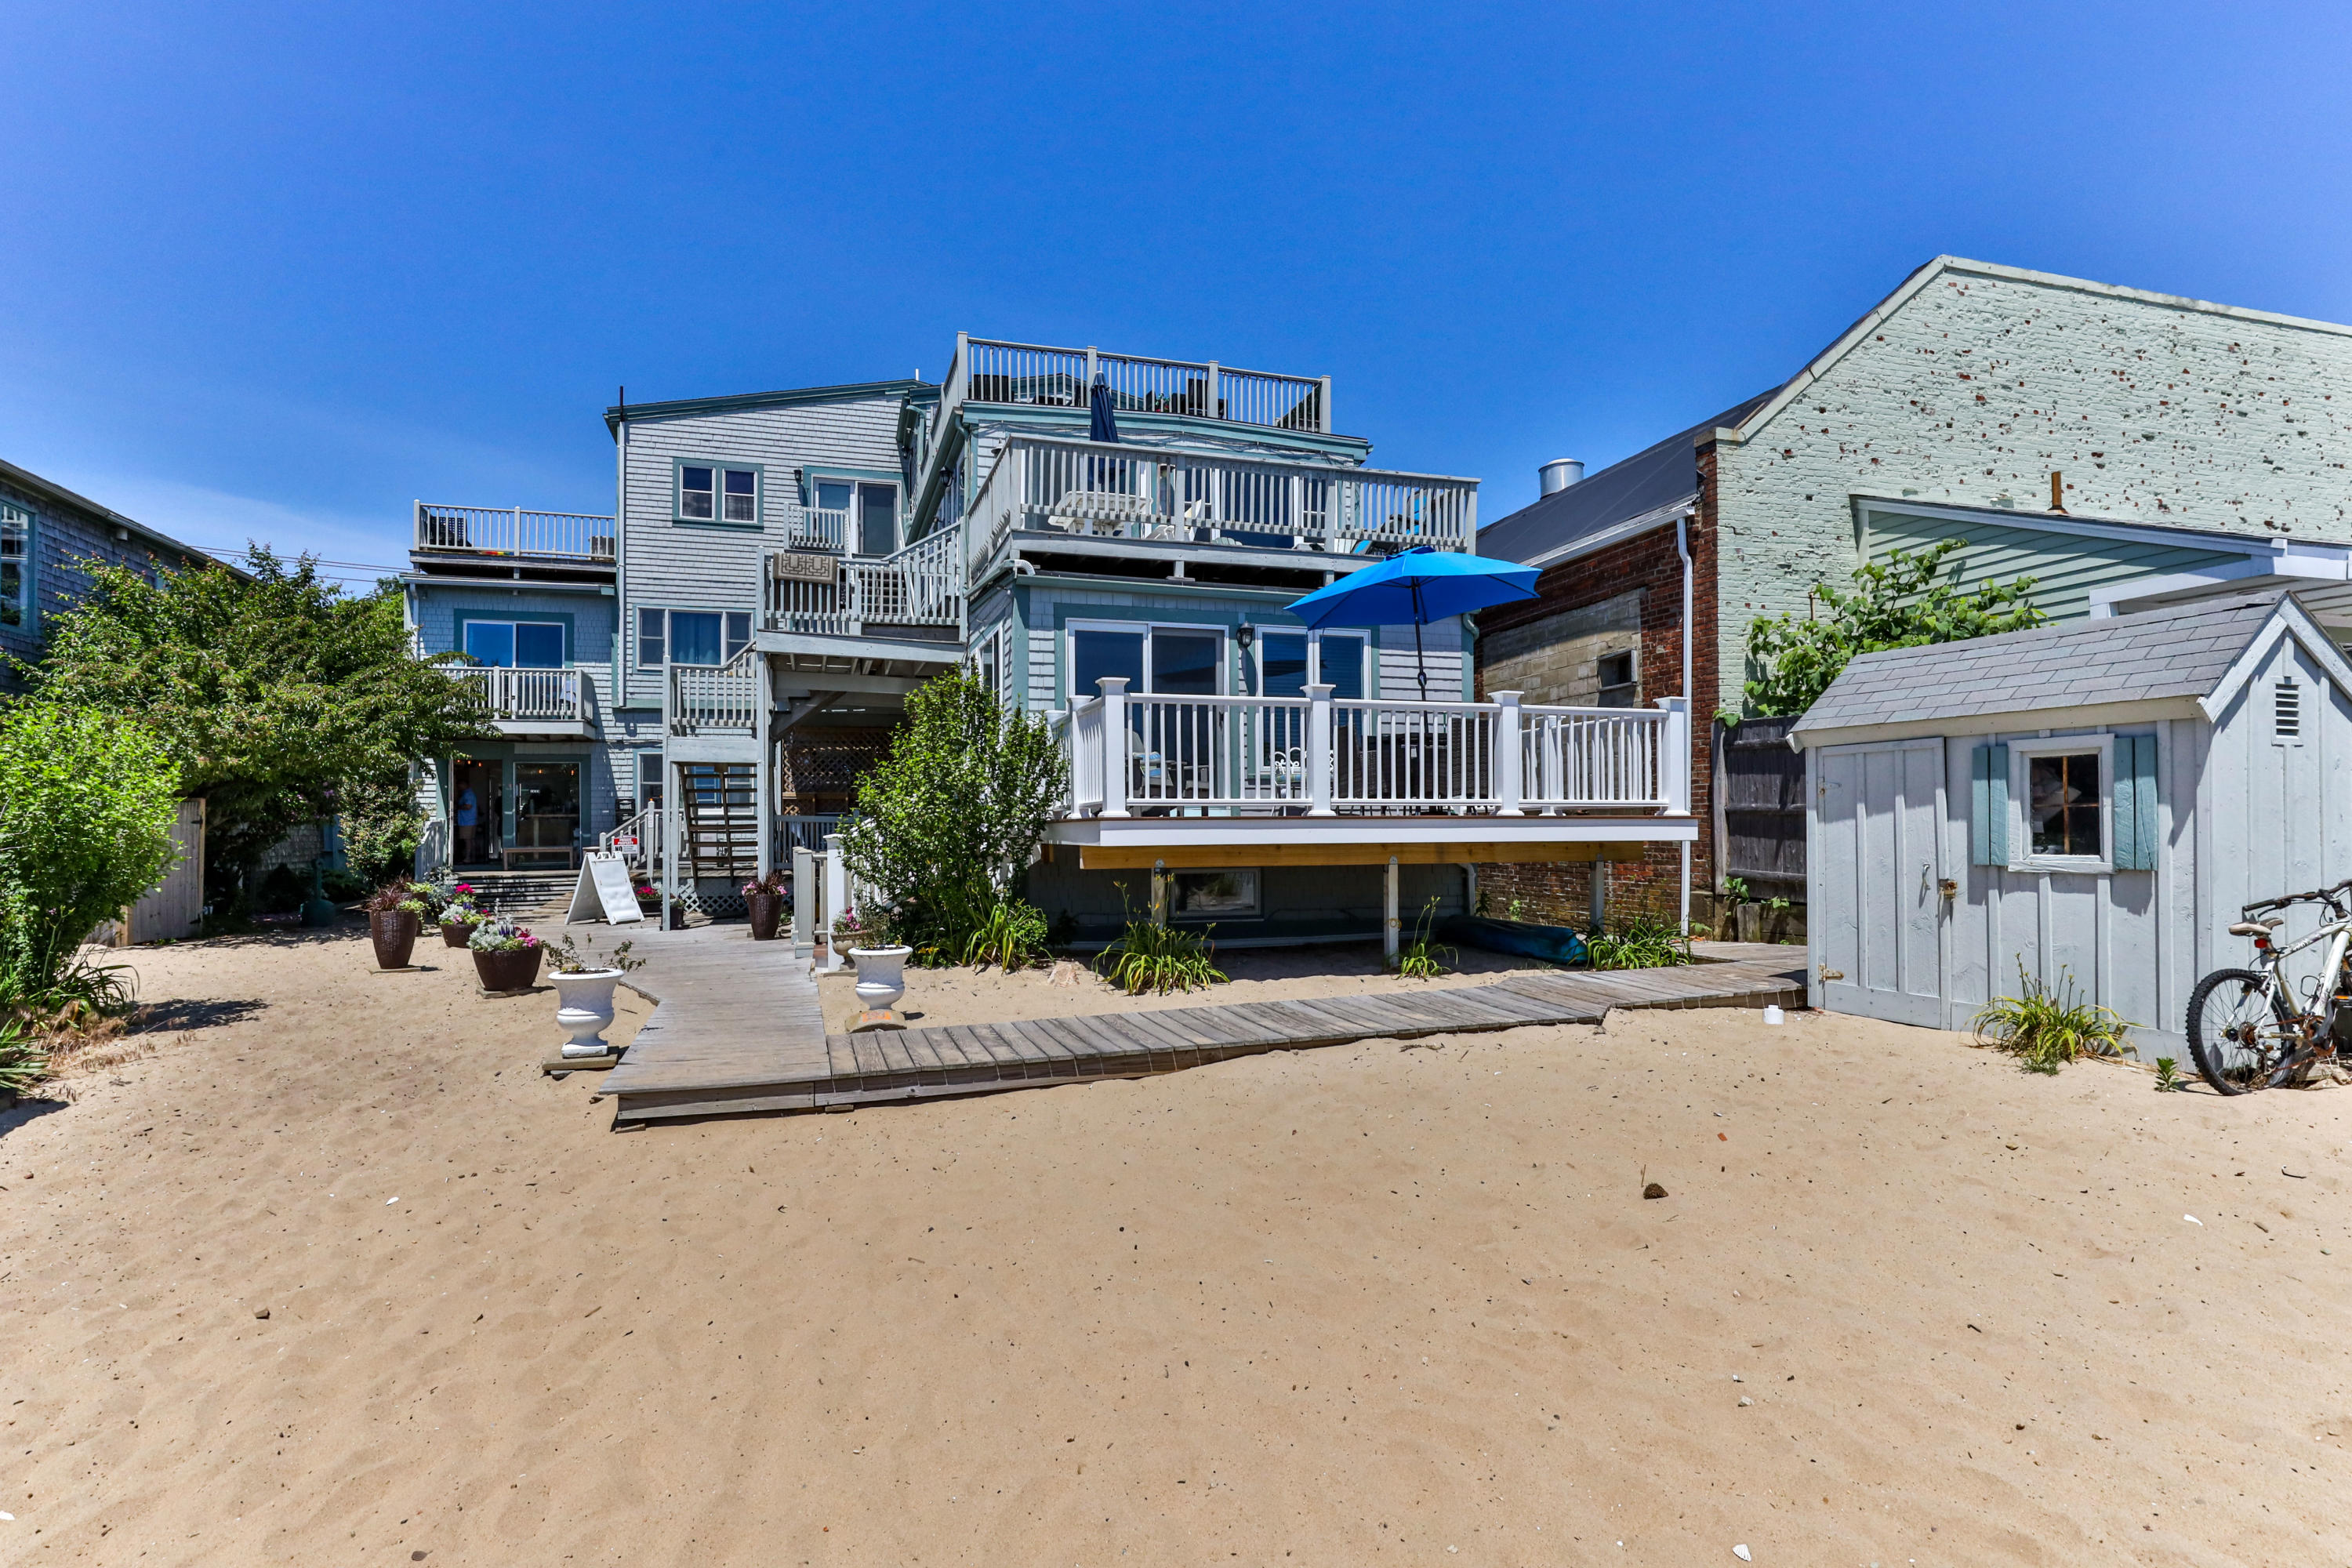 199 Commercial Street, Provincetown MA, 02657 details